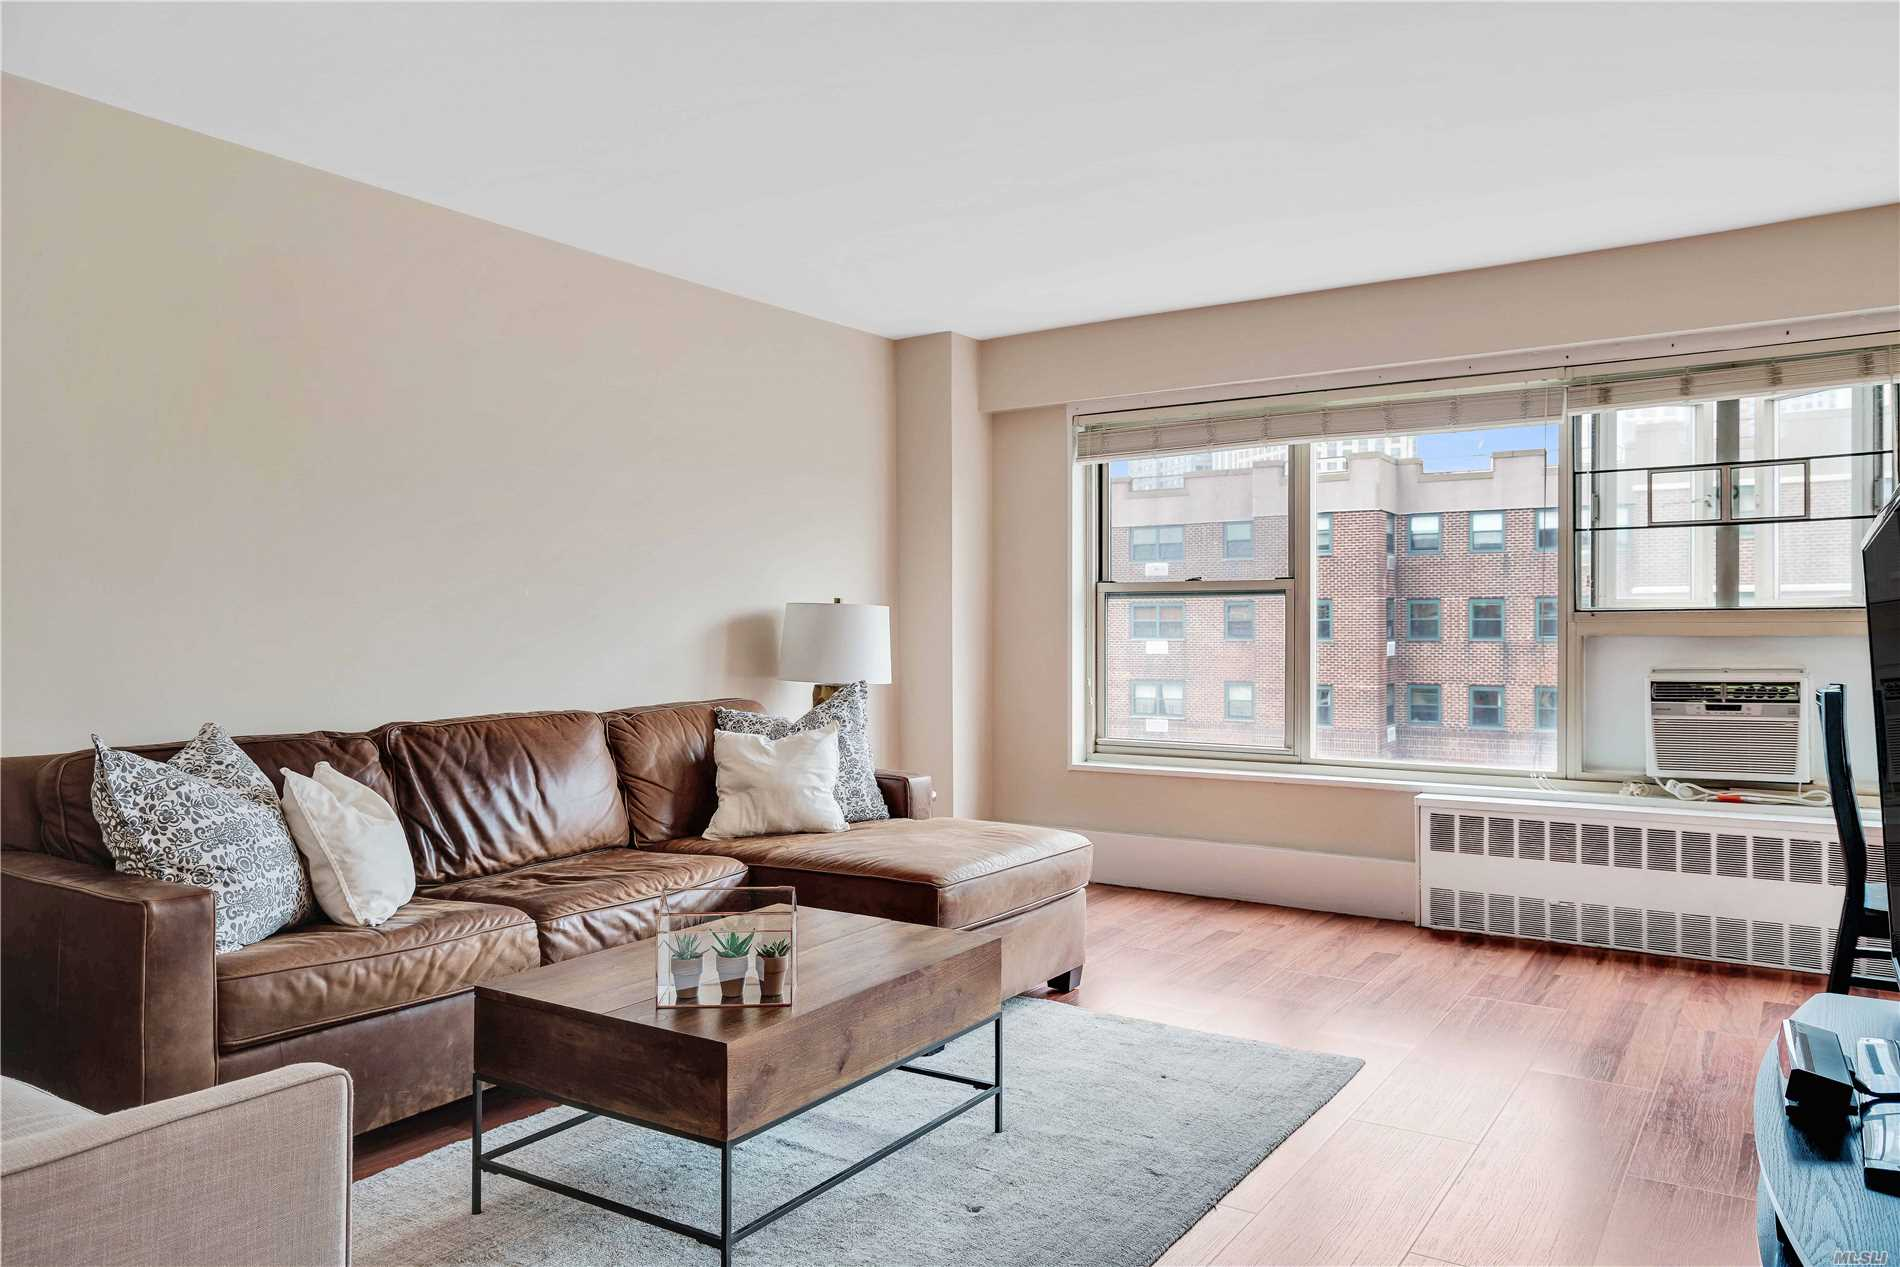 Perched high atop the tree-line with amazing views of the Manhattan Bridge and cityscape, this spacious and artfully laid out 1br co-op unit is yours for the taking! Walking in through the entry, you'll immediately notice the abundance of natural light from the wall of West facing windows. The apartment has plenty of closets for all your storage needs, an L-shaped living room with a dining area, kitchen with SS apliances. Kingsview is a gated community w/ 24hr security guard. Great location!